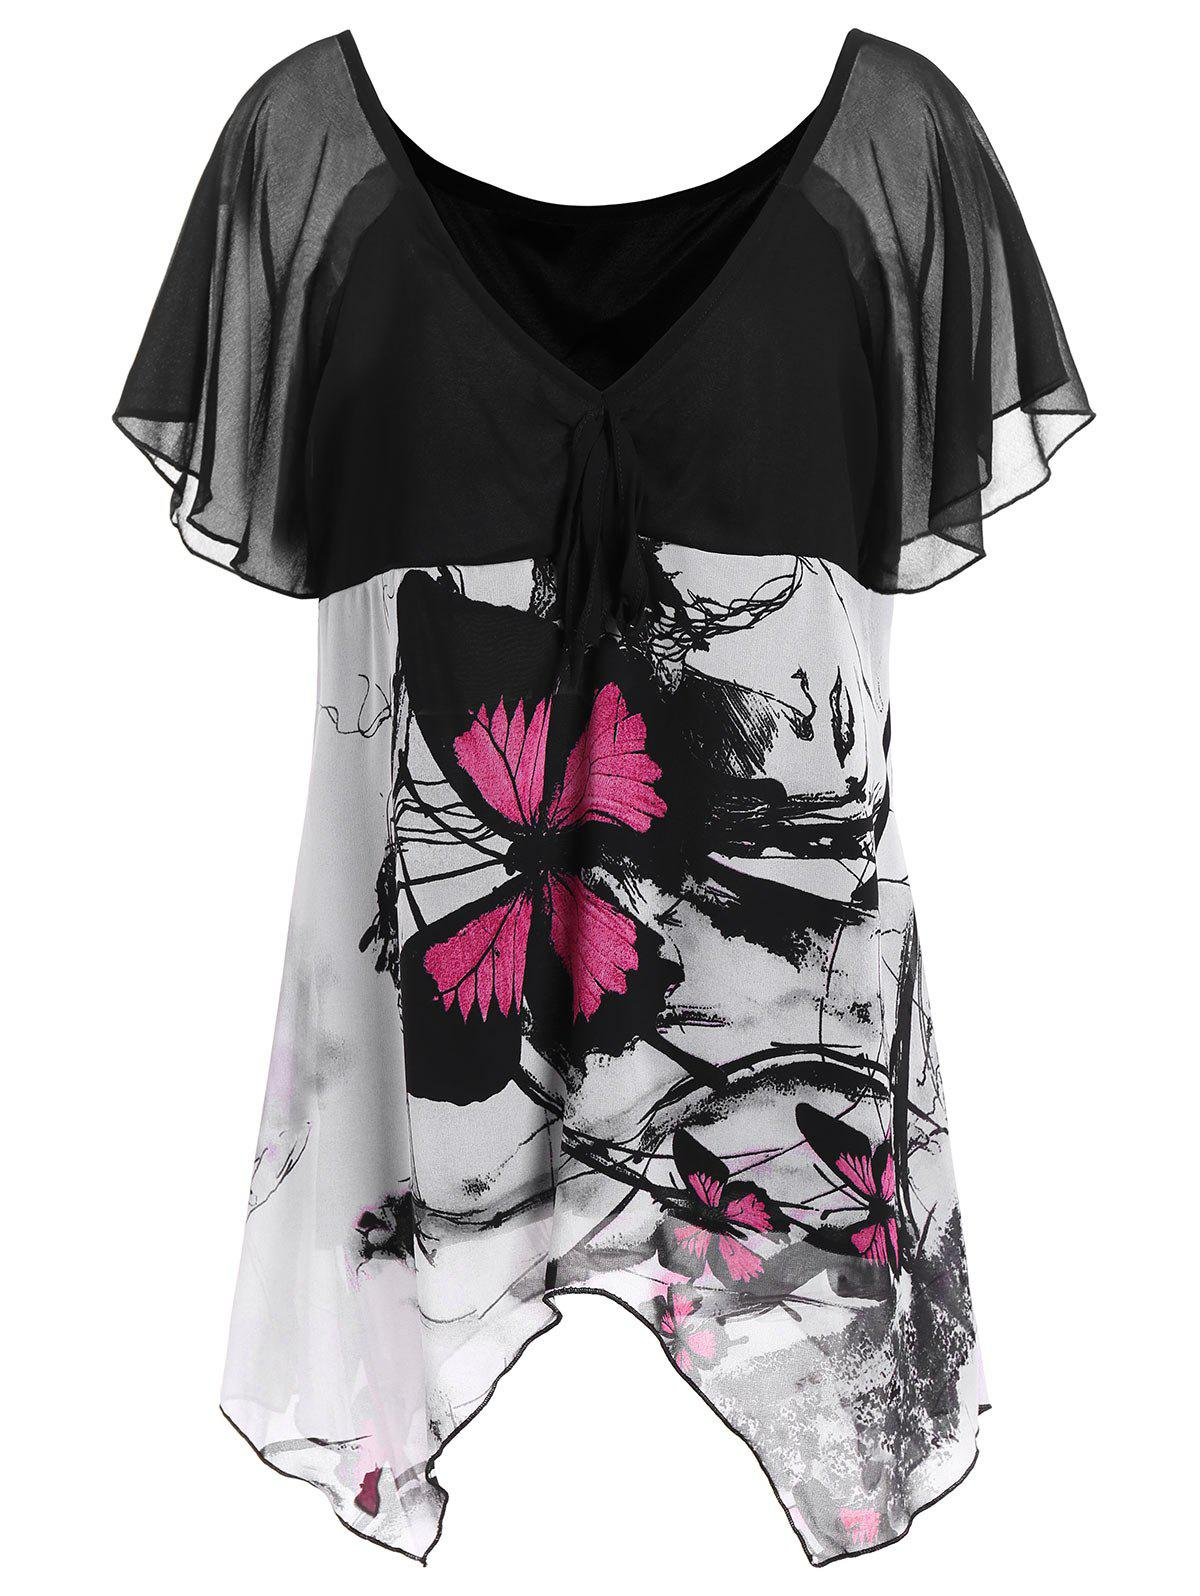 Plus Size Chiffon Butterfly Print TopWOMEN<br><br>Size: 3XL; Color: BLACK; Material: Polyester; Fabric Type: Chiffon; Shirt Length: Long; Sleeve Length: Short; Collar: V-Neck; Style: Fashion; Season: Summer; Pattern Type: Print; Weight: 0.2500kg; Package Contents: 1 x Top;